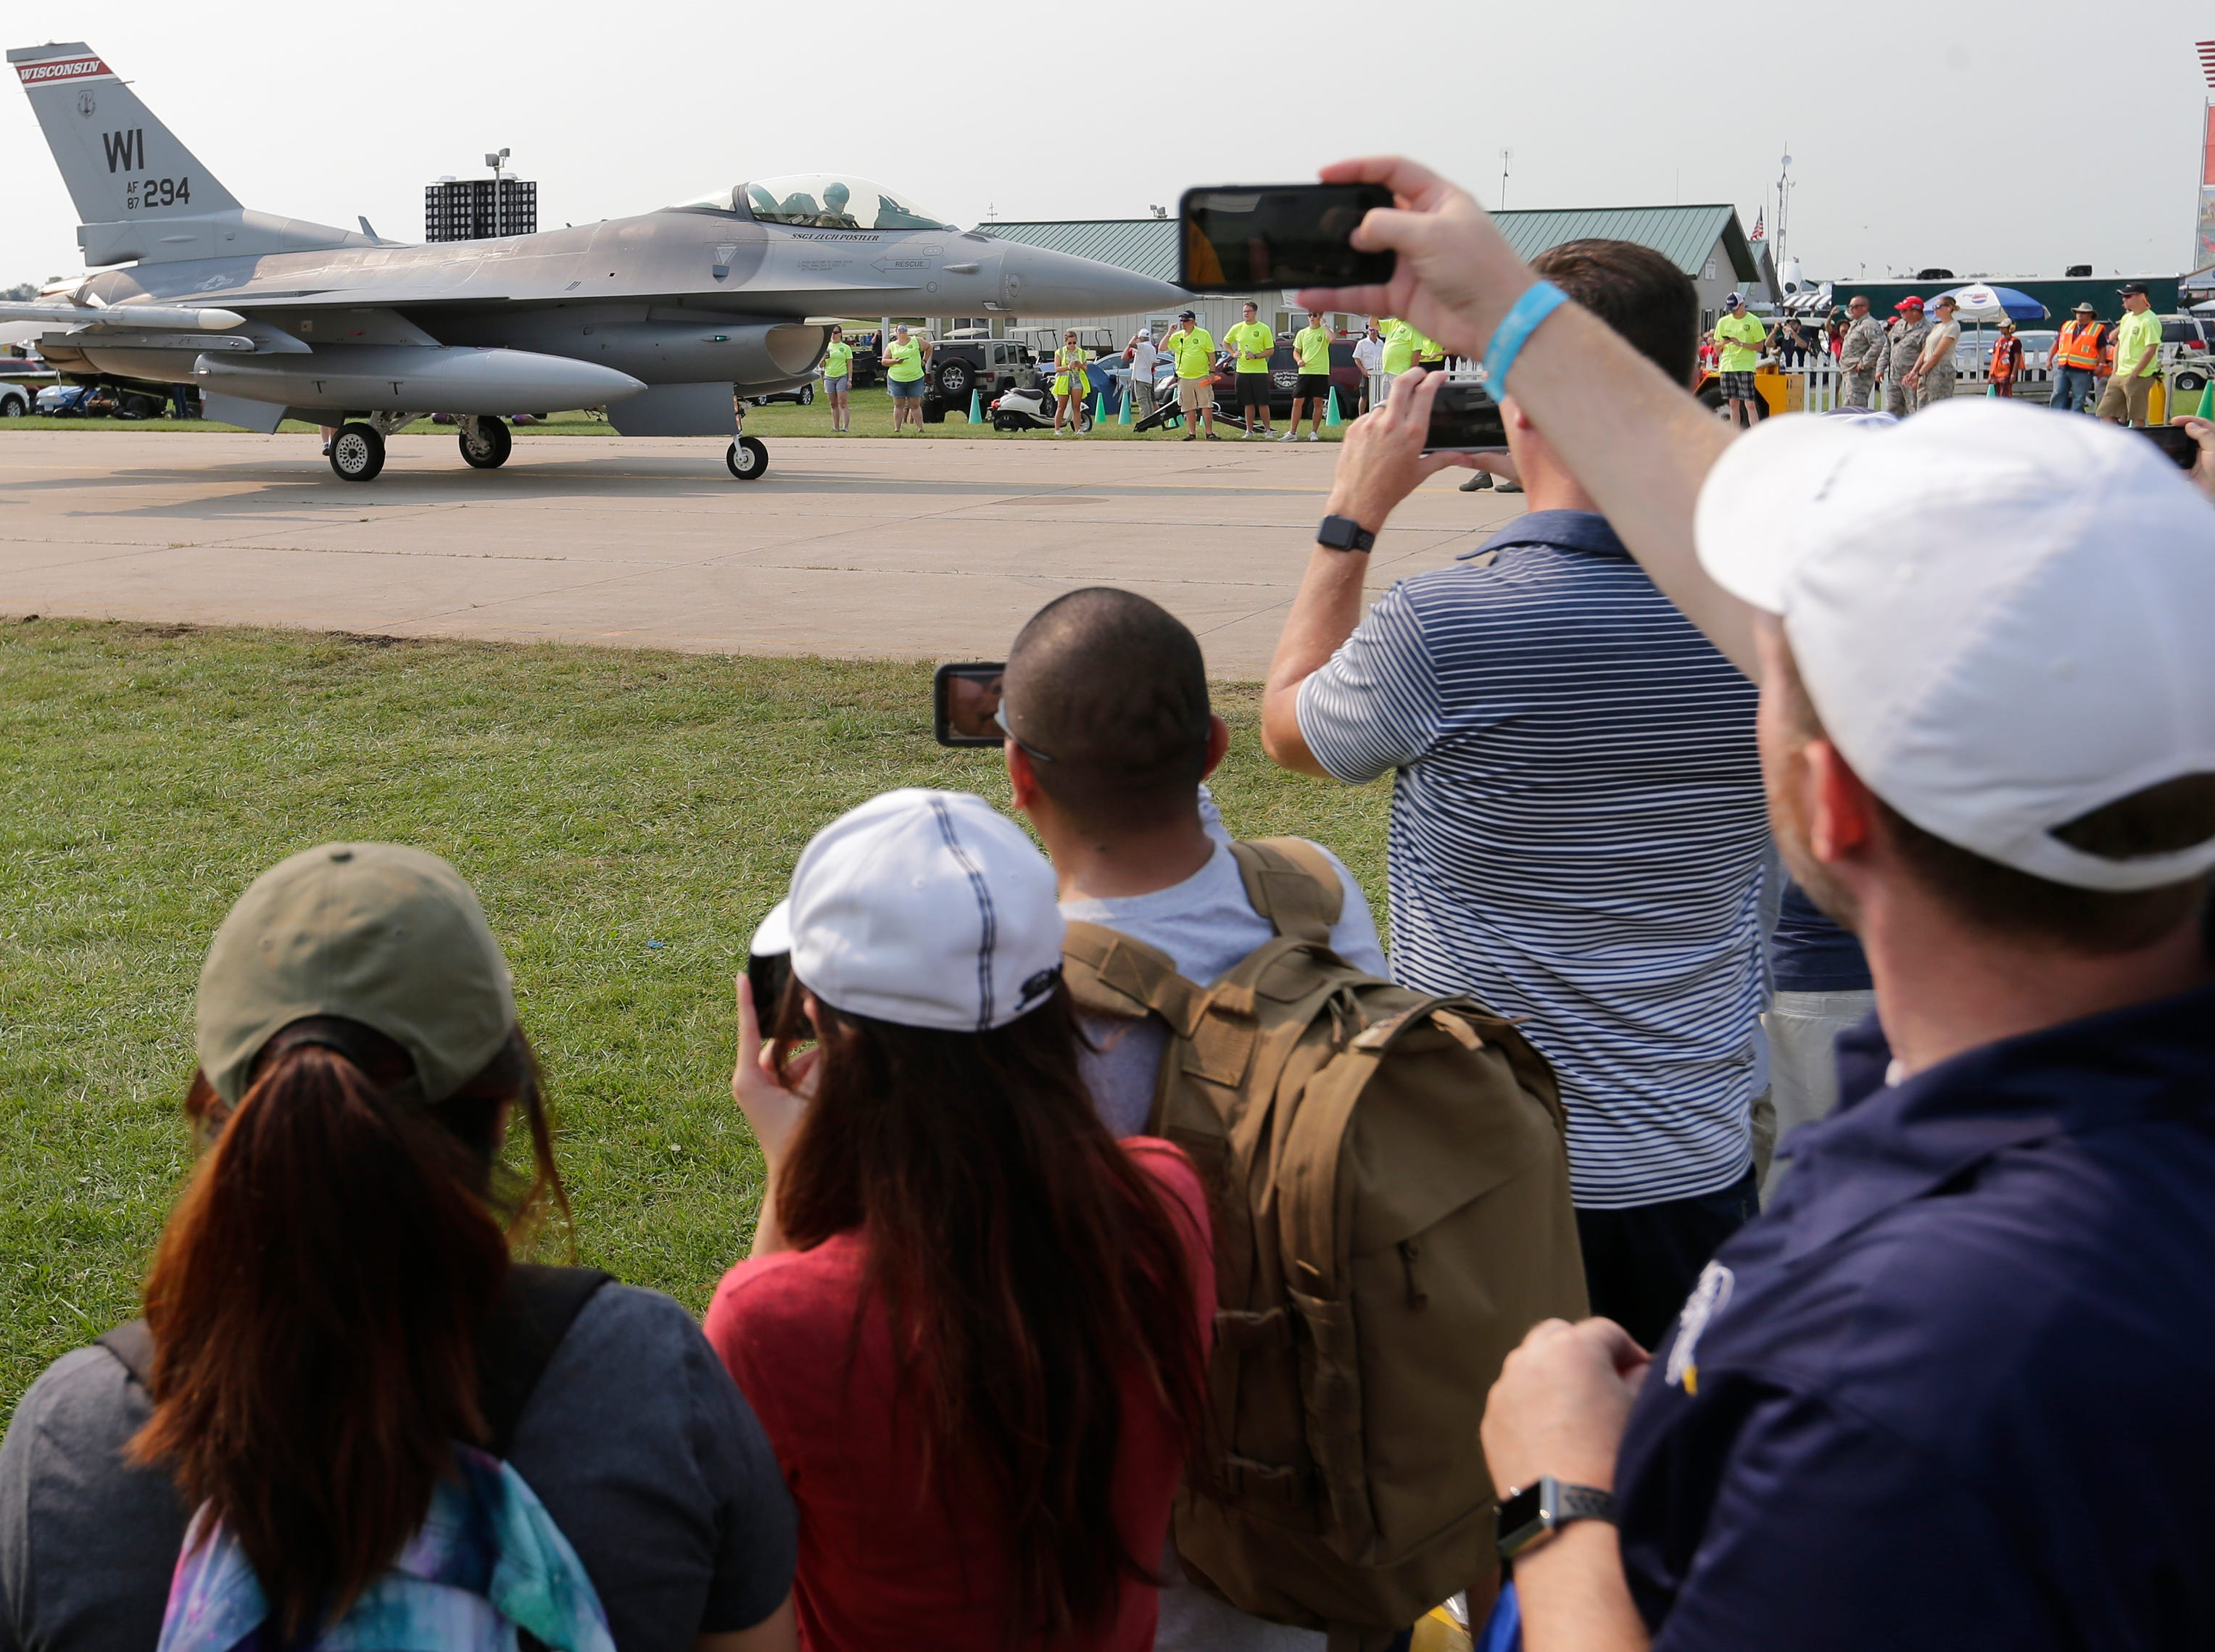 The F-16 from the Wisconsin 115 Fighter wing lands in at AirVenture and is stationed at Boeing Plaza.  The first day of AirVenture 2018 opened on July 23, 2018.  Thousands of people will pass through the gates of AirVenture. Joe Sienkiewicz/USA Today NETWORK-Wisconsin